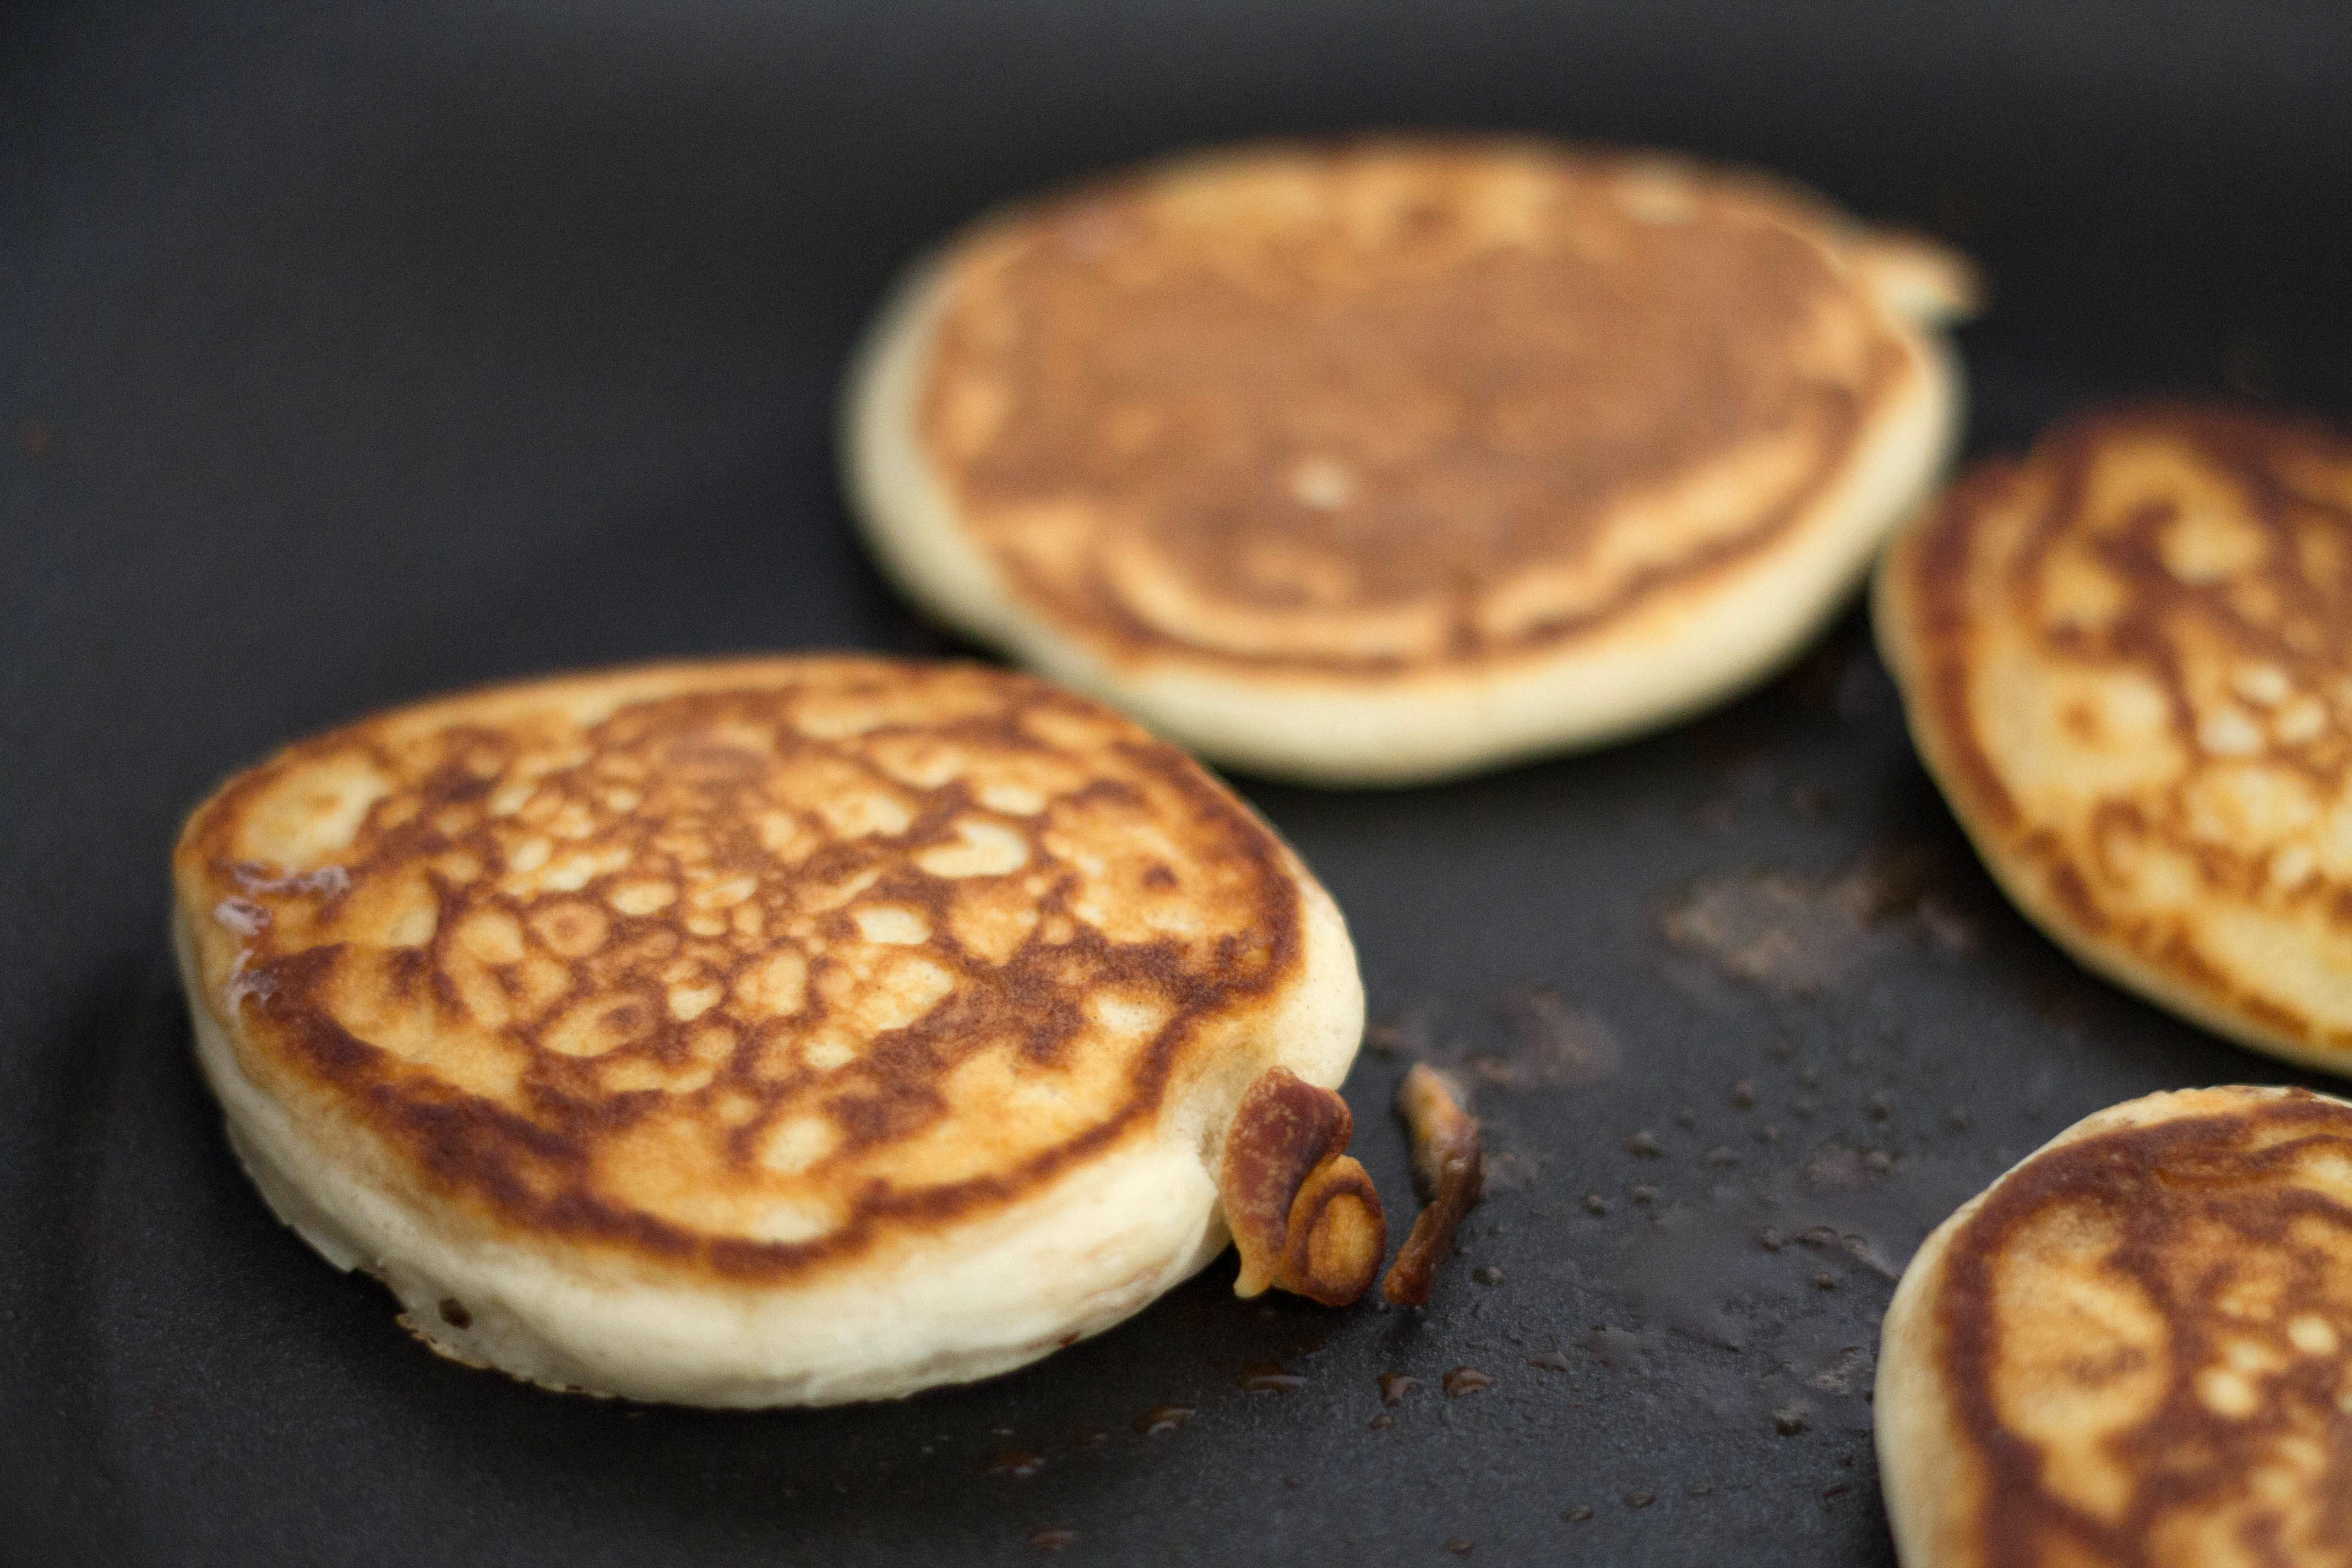 Golden brown Scotch Pancakes cooking in the pan